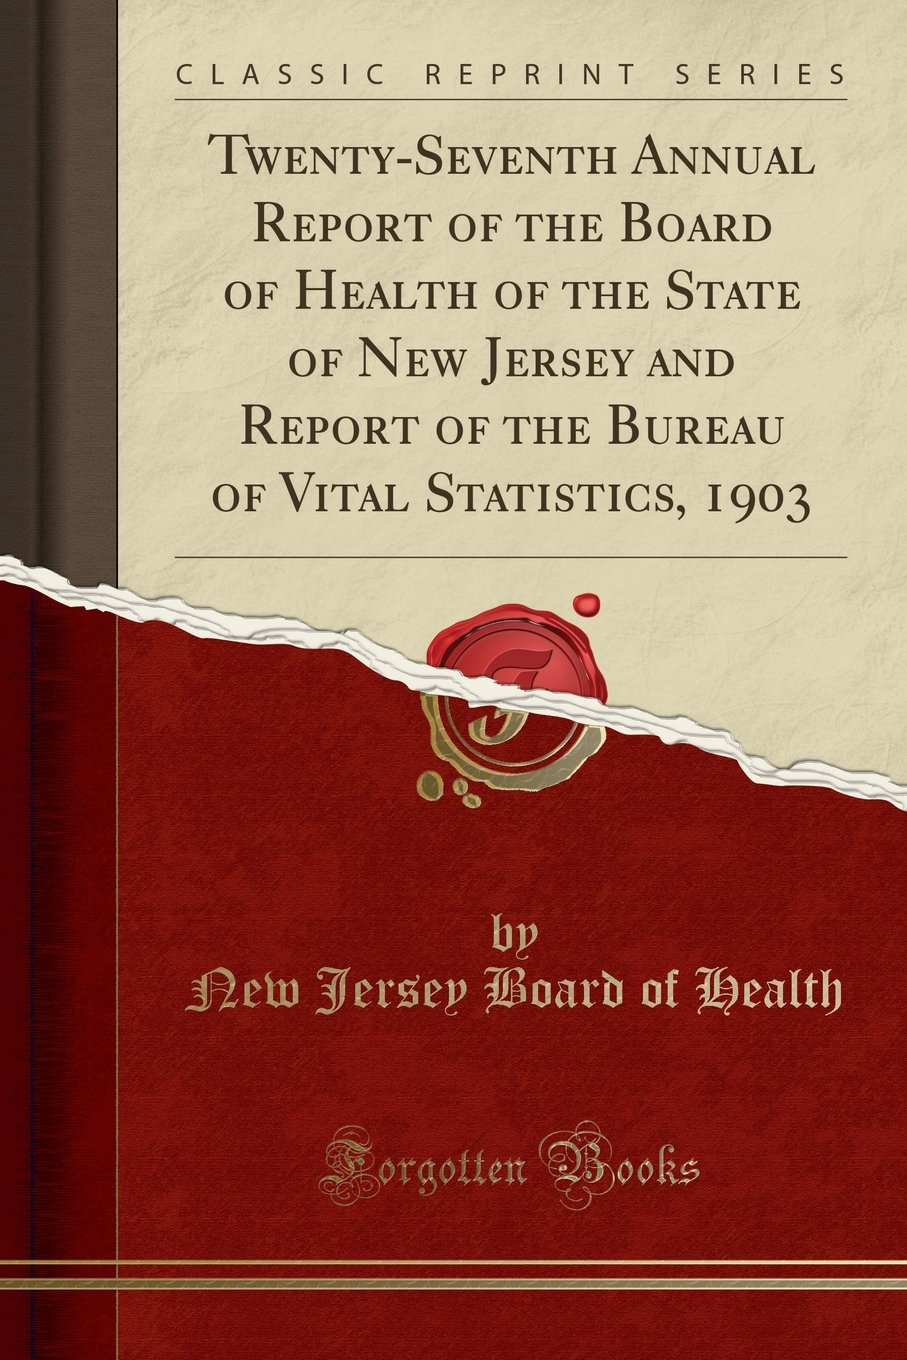 Download Twenty-Seventh Annual Report of the Board of Health of the State of New Jersey and Report of the Bureau of Vital Statistics, 1903 (Classic Reprint) pdf